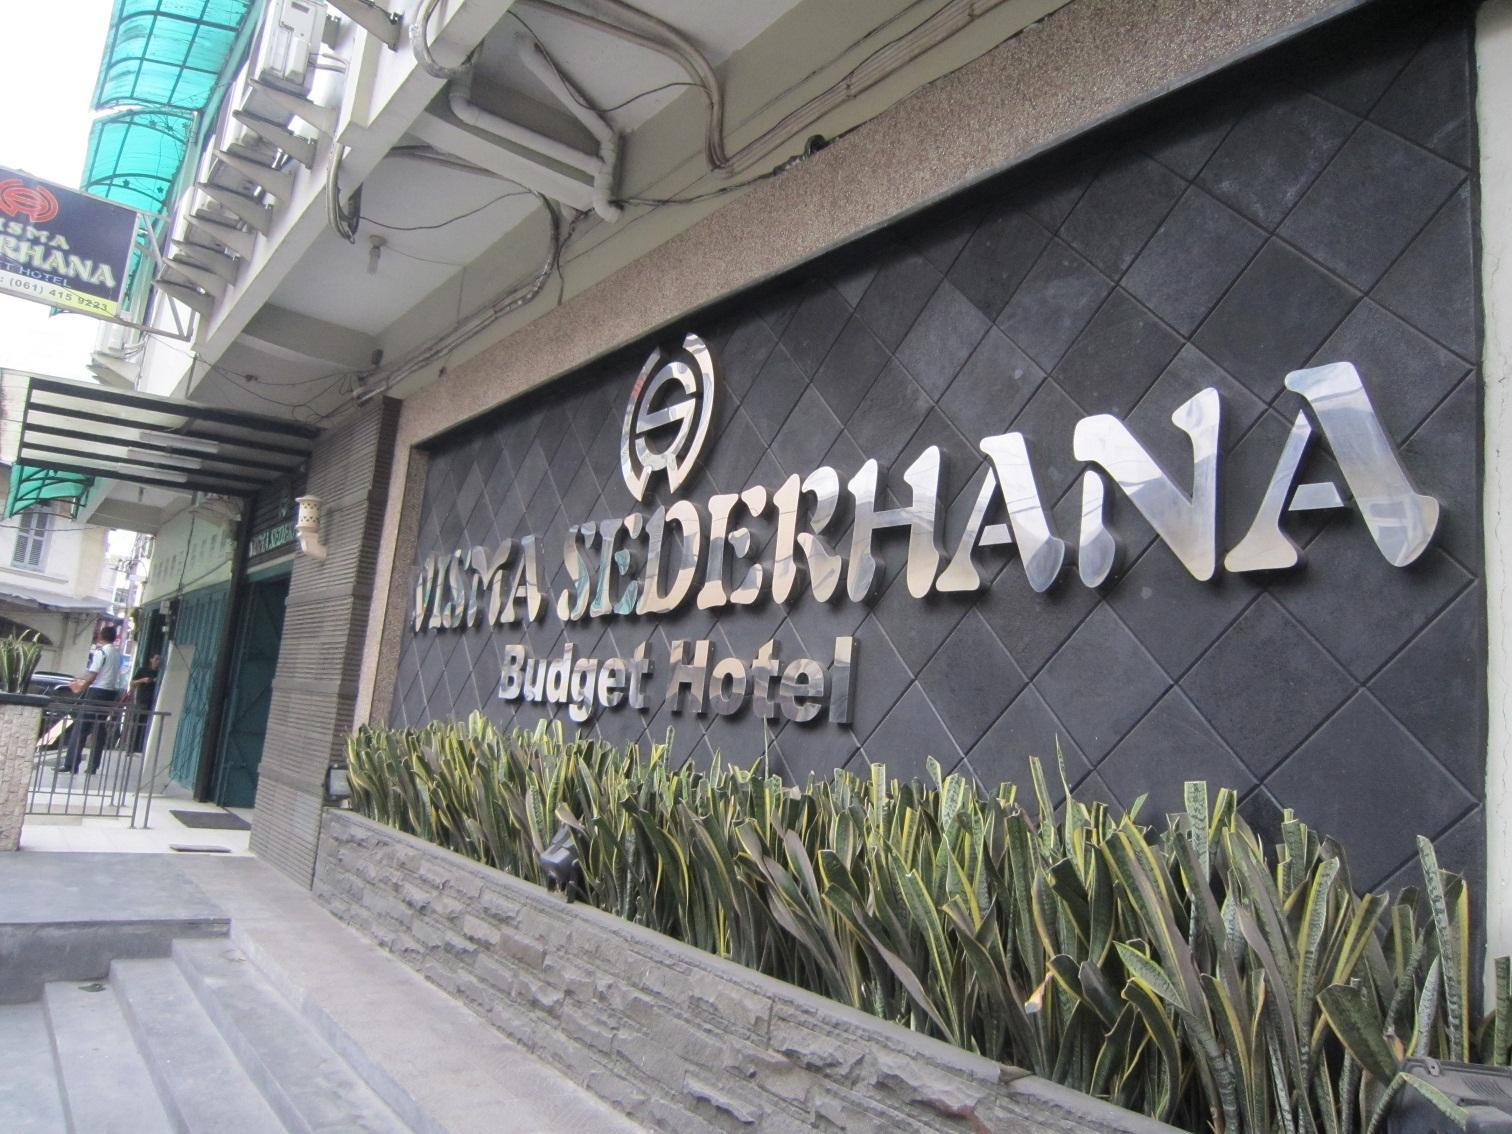 Wisma Sederhana Budget Hotel - Hotels and Accommodation in Indonesia, Asia